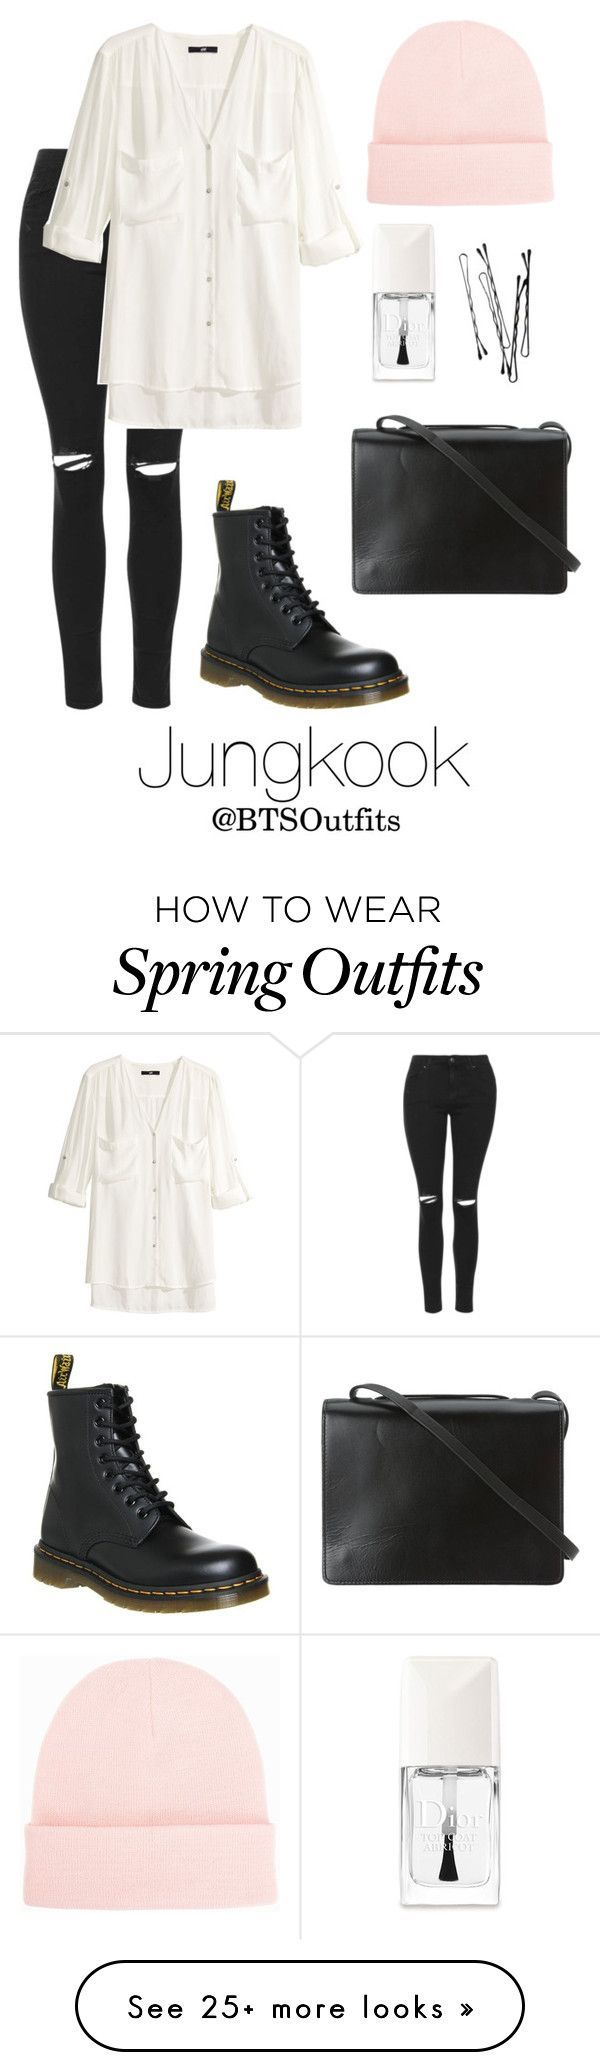 """Spring Outfit Inspired by Jungkook"" by btsoutfits on Polyvore featuring Topshop, H&M, BCBGMAXAZRIA, Dr. Martens, Christian Dior, NLY Accessories, women's clothing, women, female and woman"